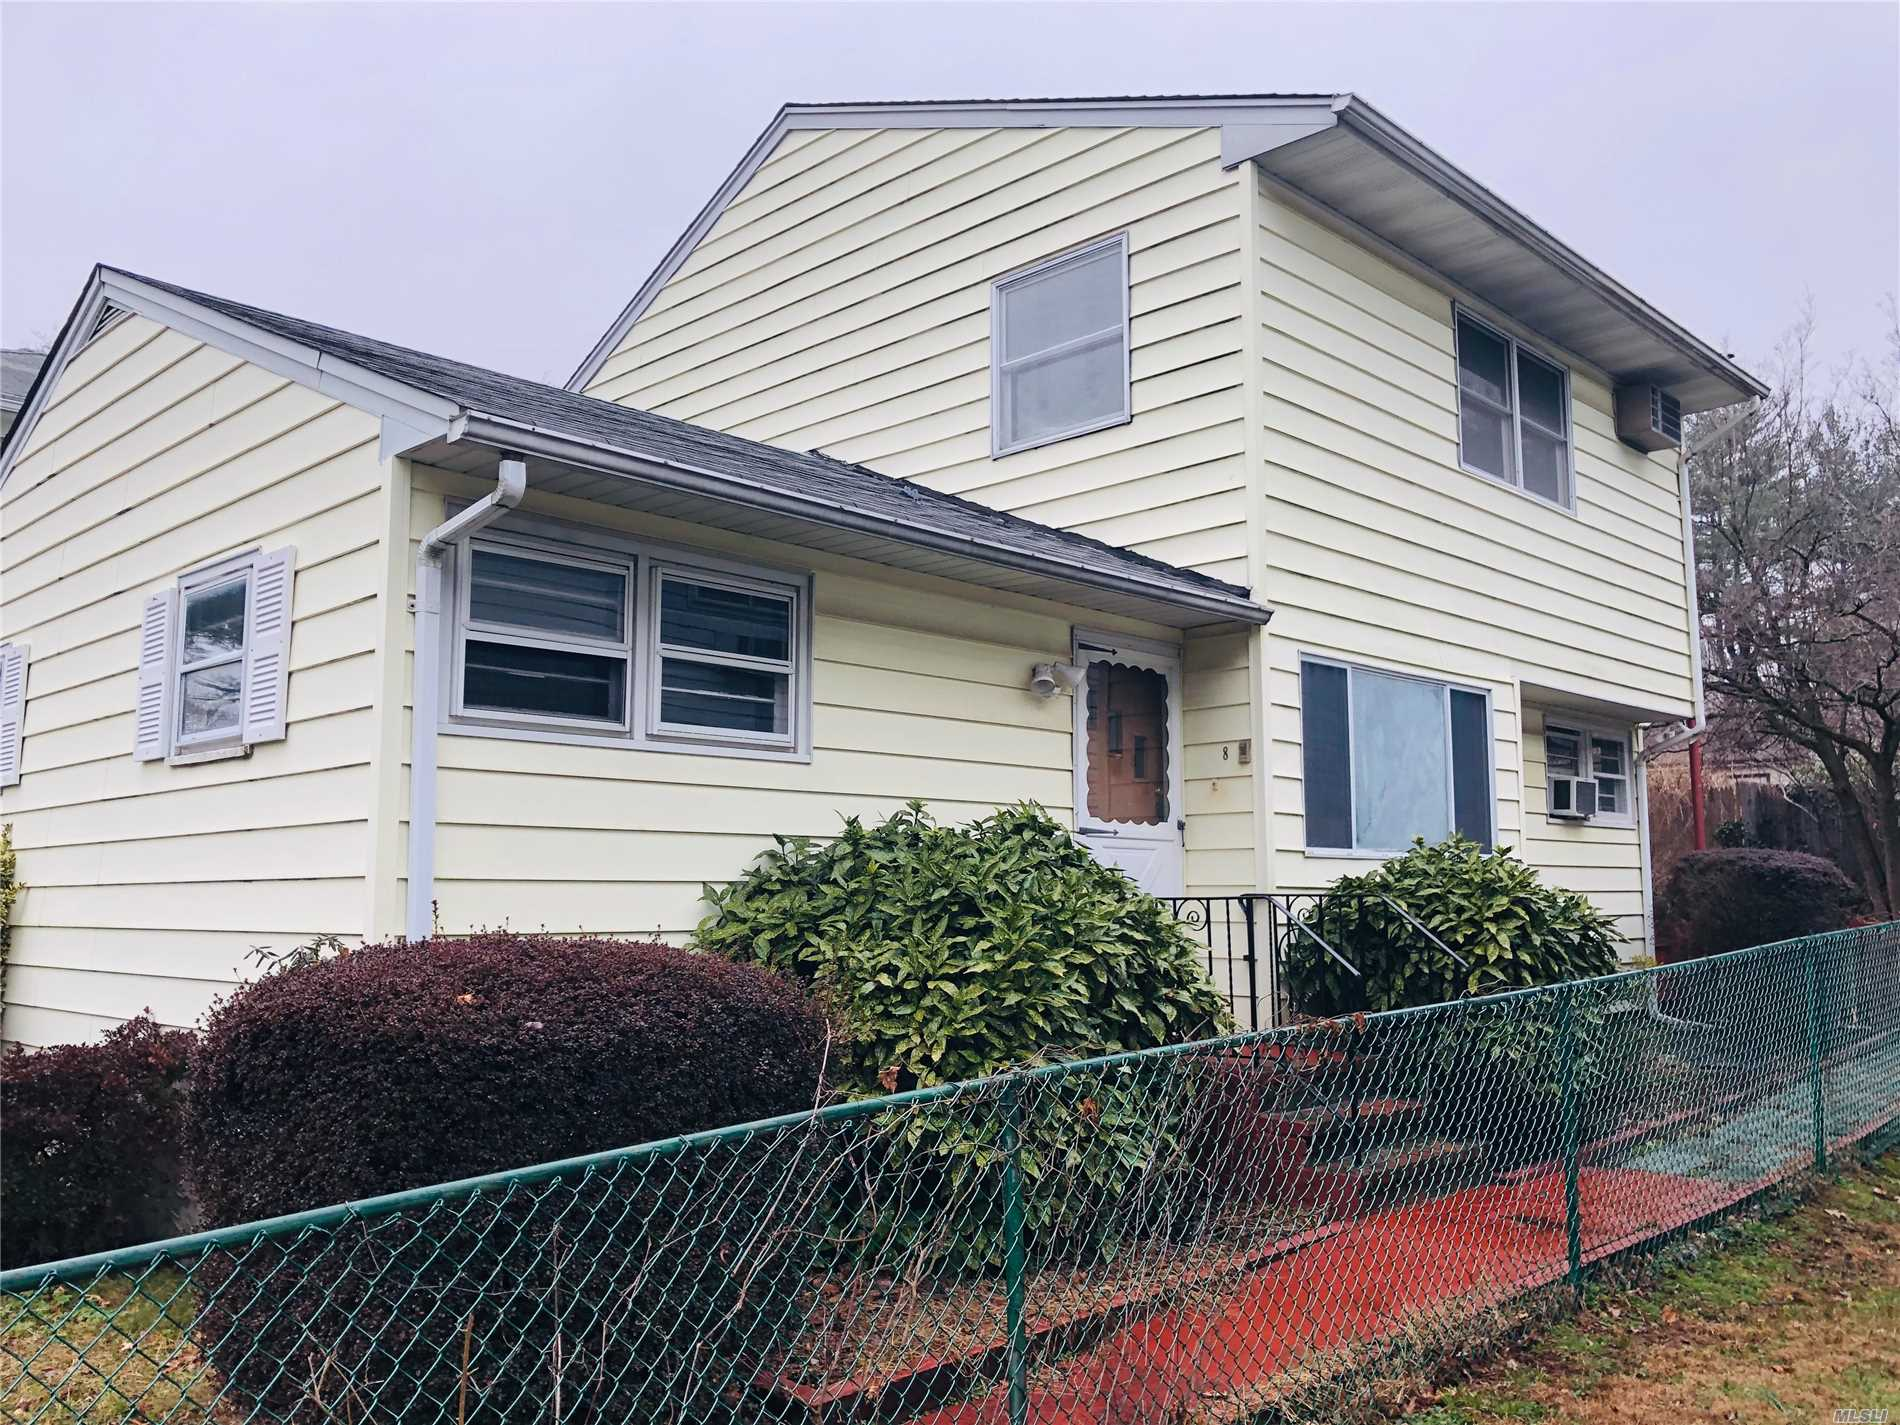 Sunfilled Hugh 4 Bedroom, 2 Full Bths, Living Room/Dining Room, Set On Oversized Lot Fully Fenced, Private Driveway, Dead End Street, North Shore Schools. Pets Allowed.